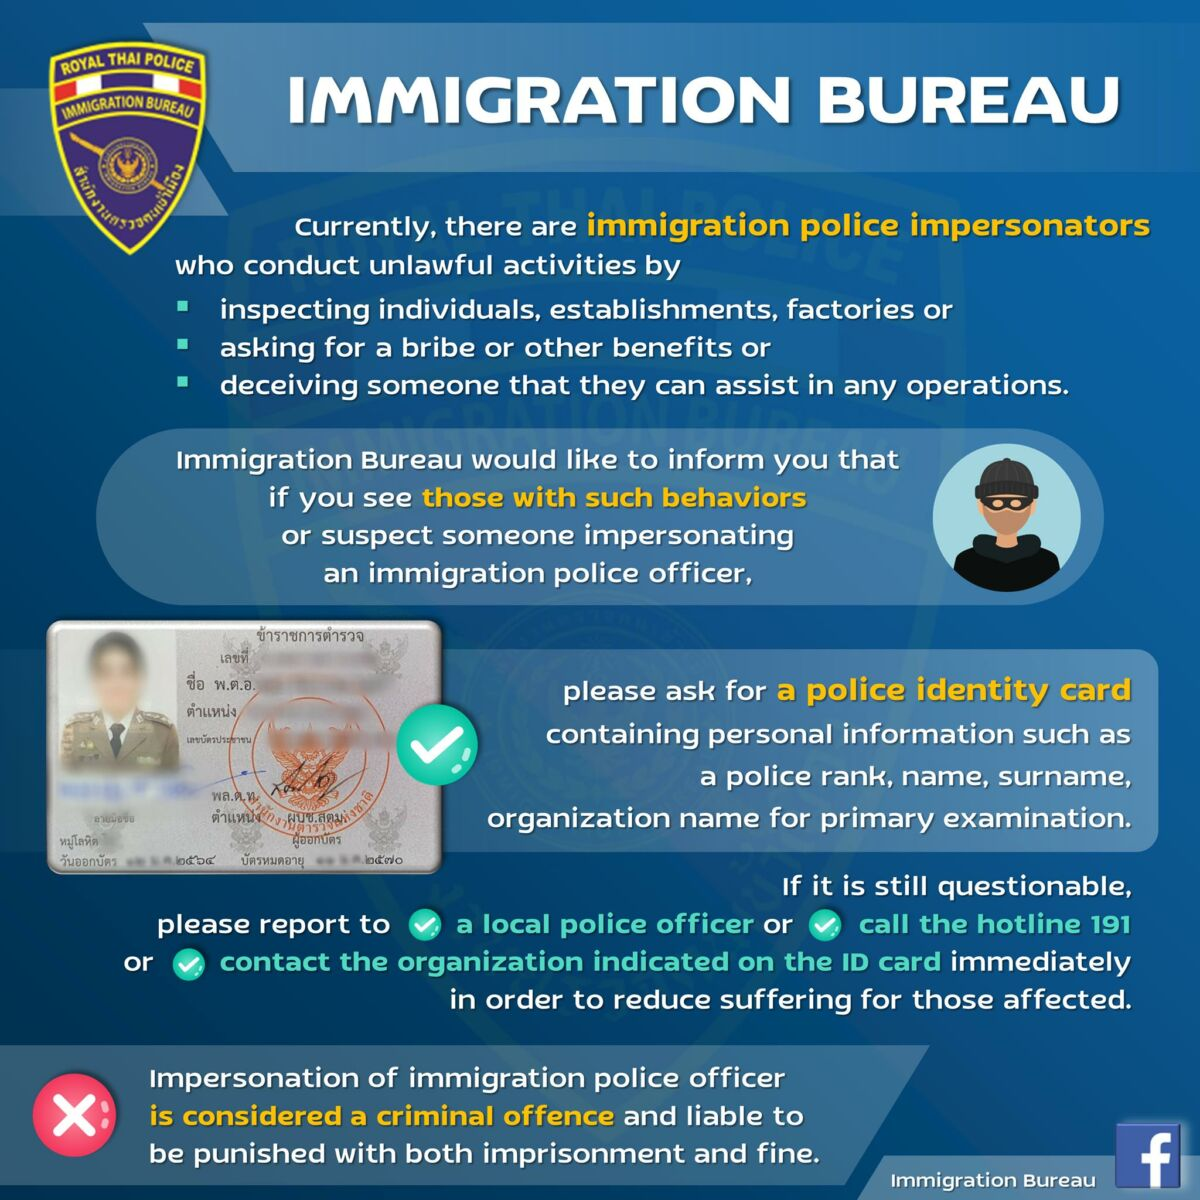 Public warned about immigration police impersonators asking for bribes | News by Thaiger